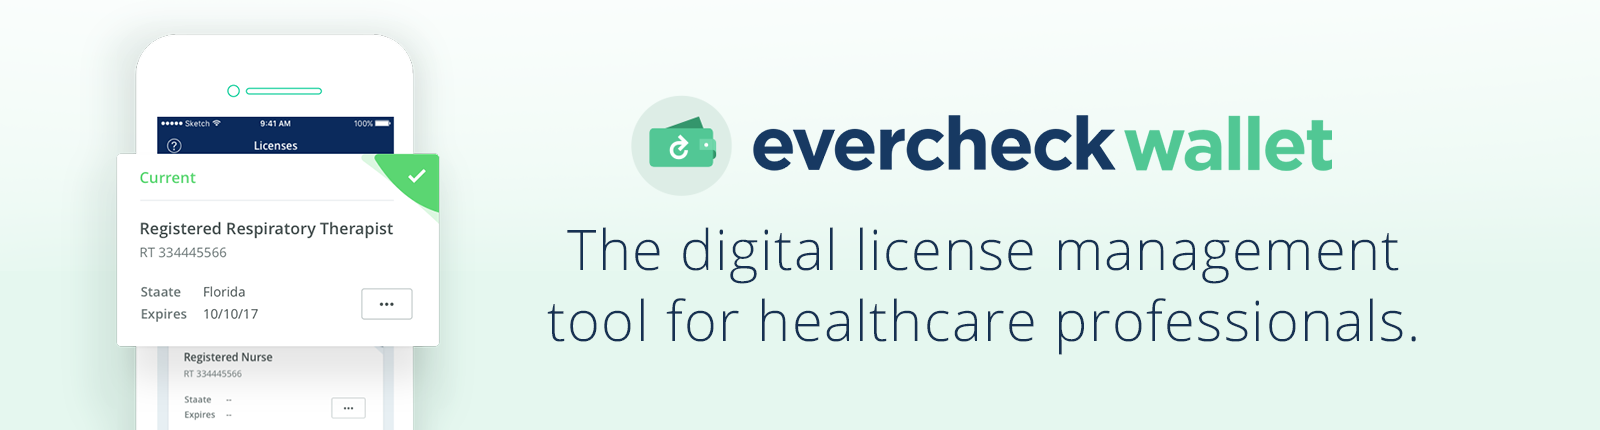 Introducing EverCheck Wallet: The digital license management tool for healthcare professionals.